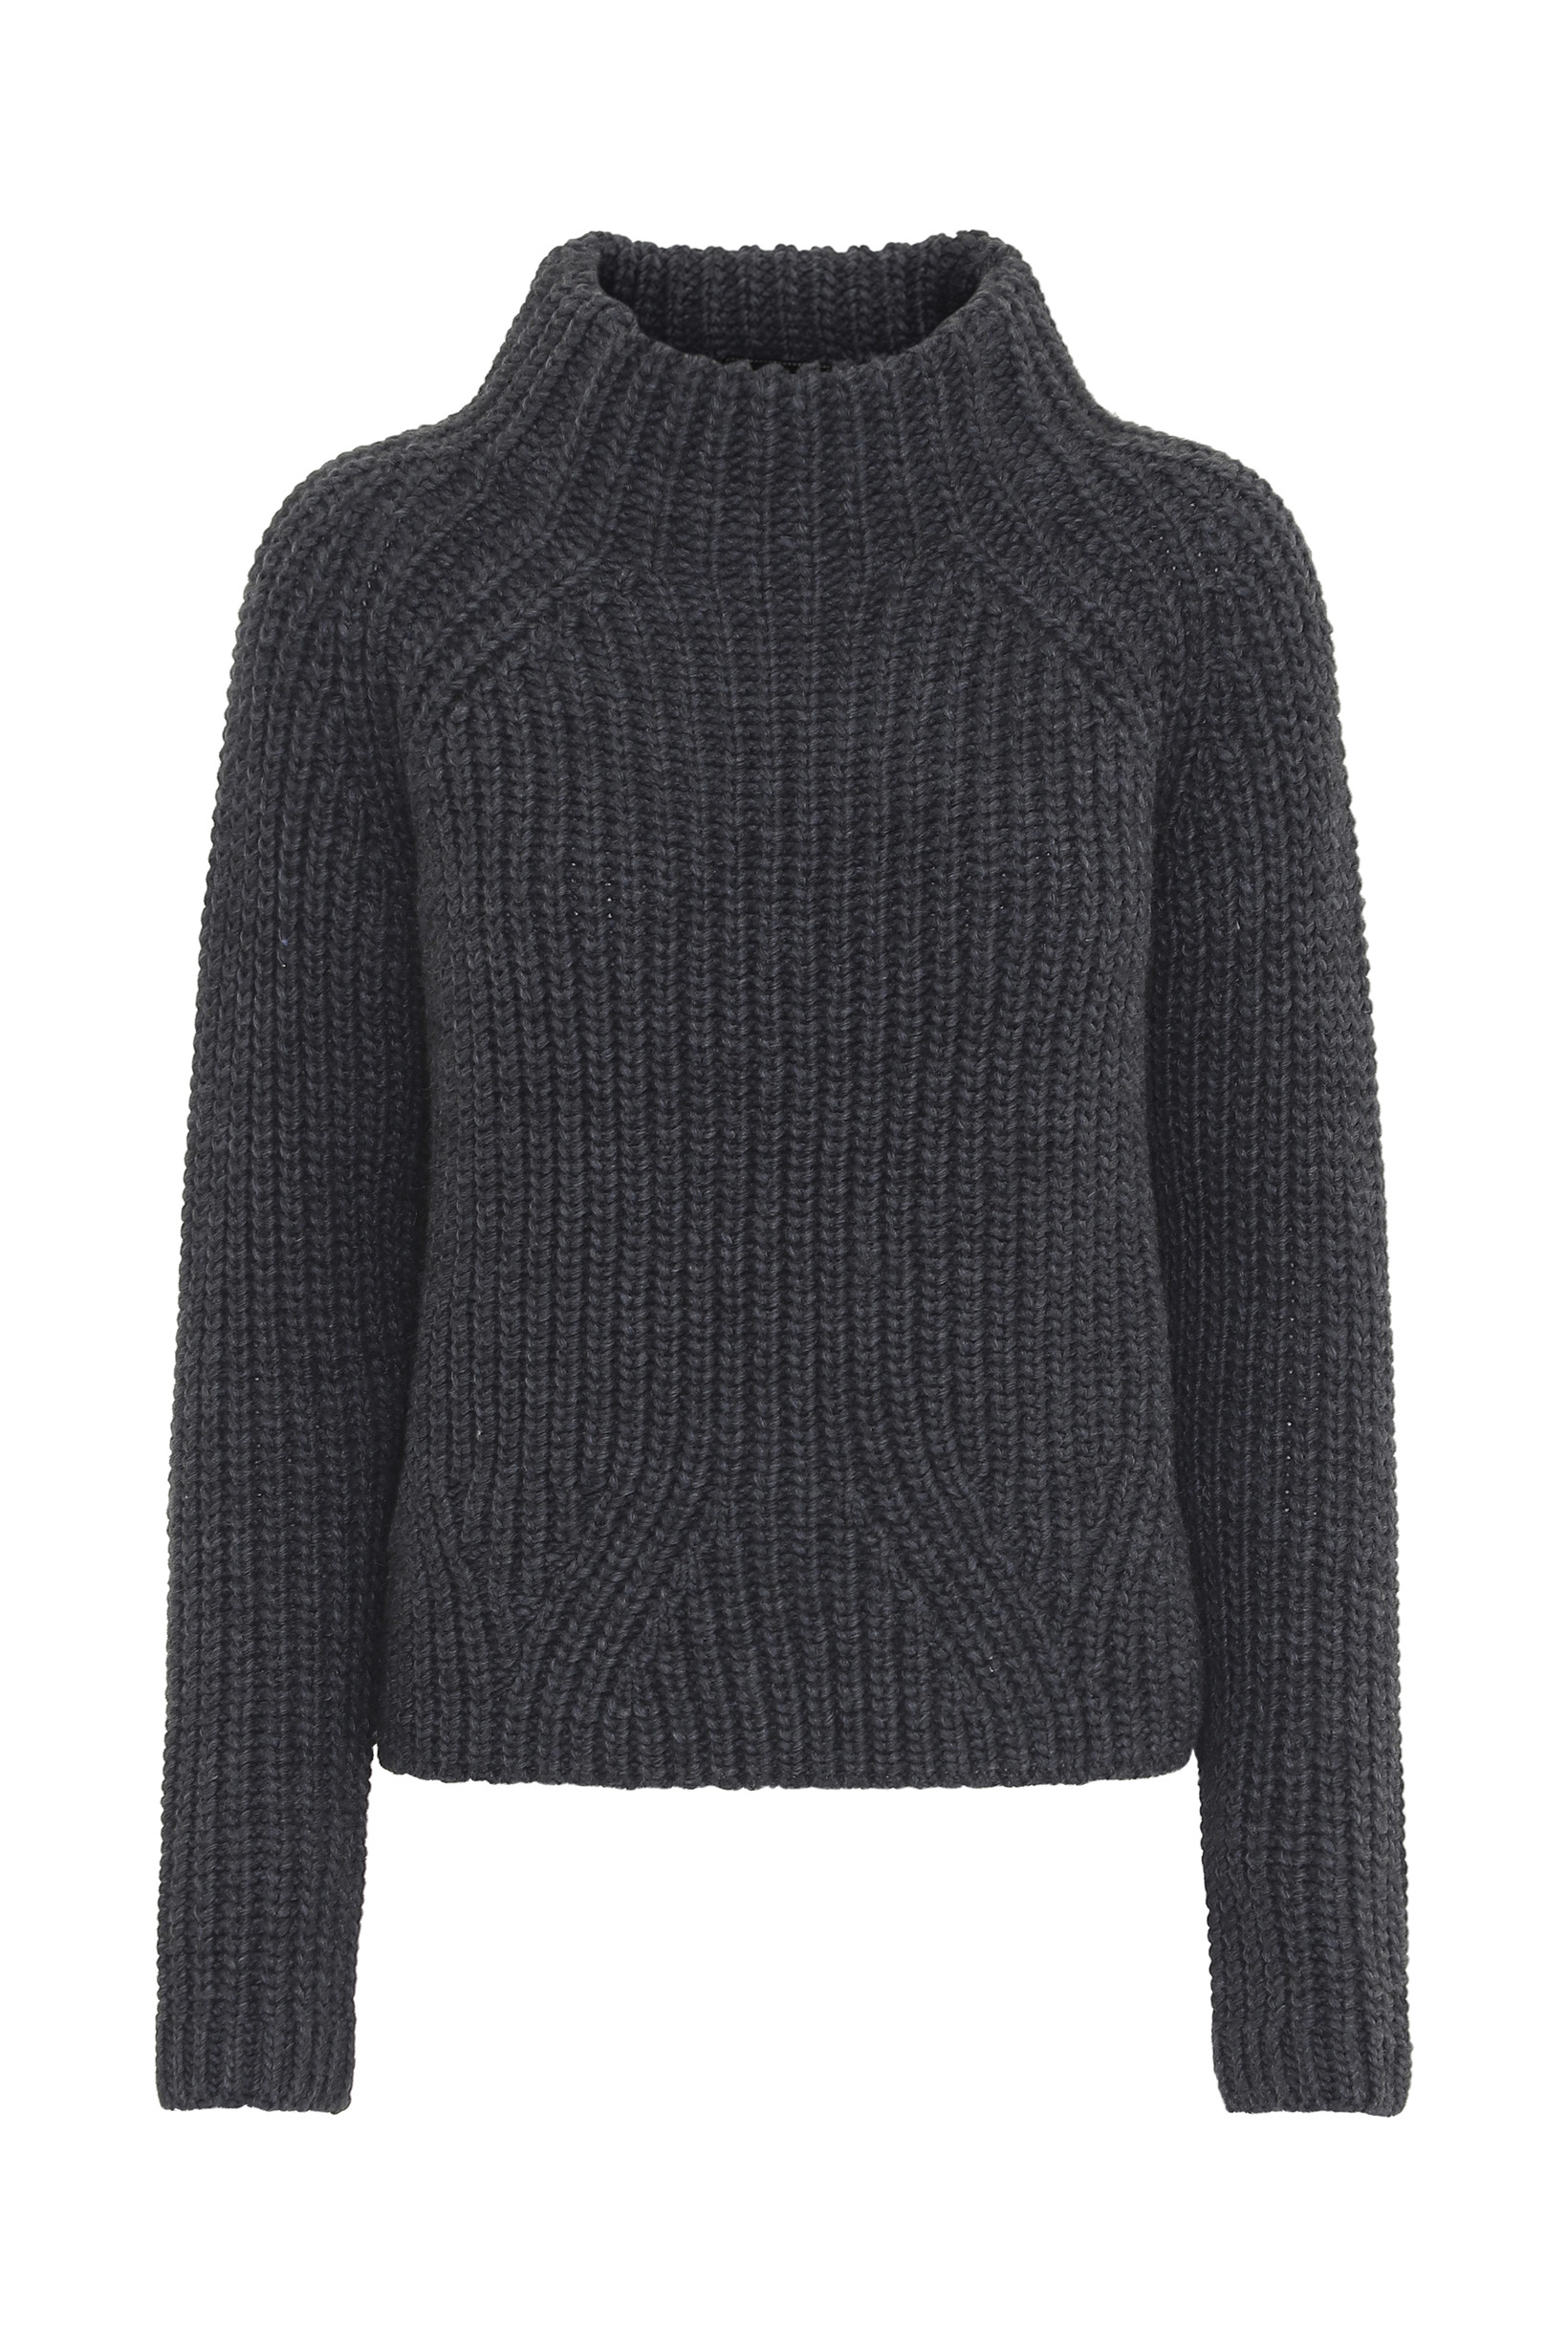 CRÉTON Bellie sweater X33 S